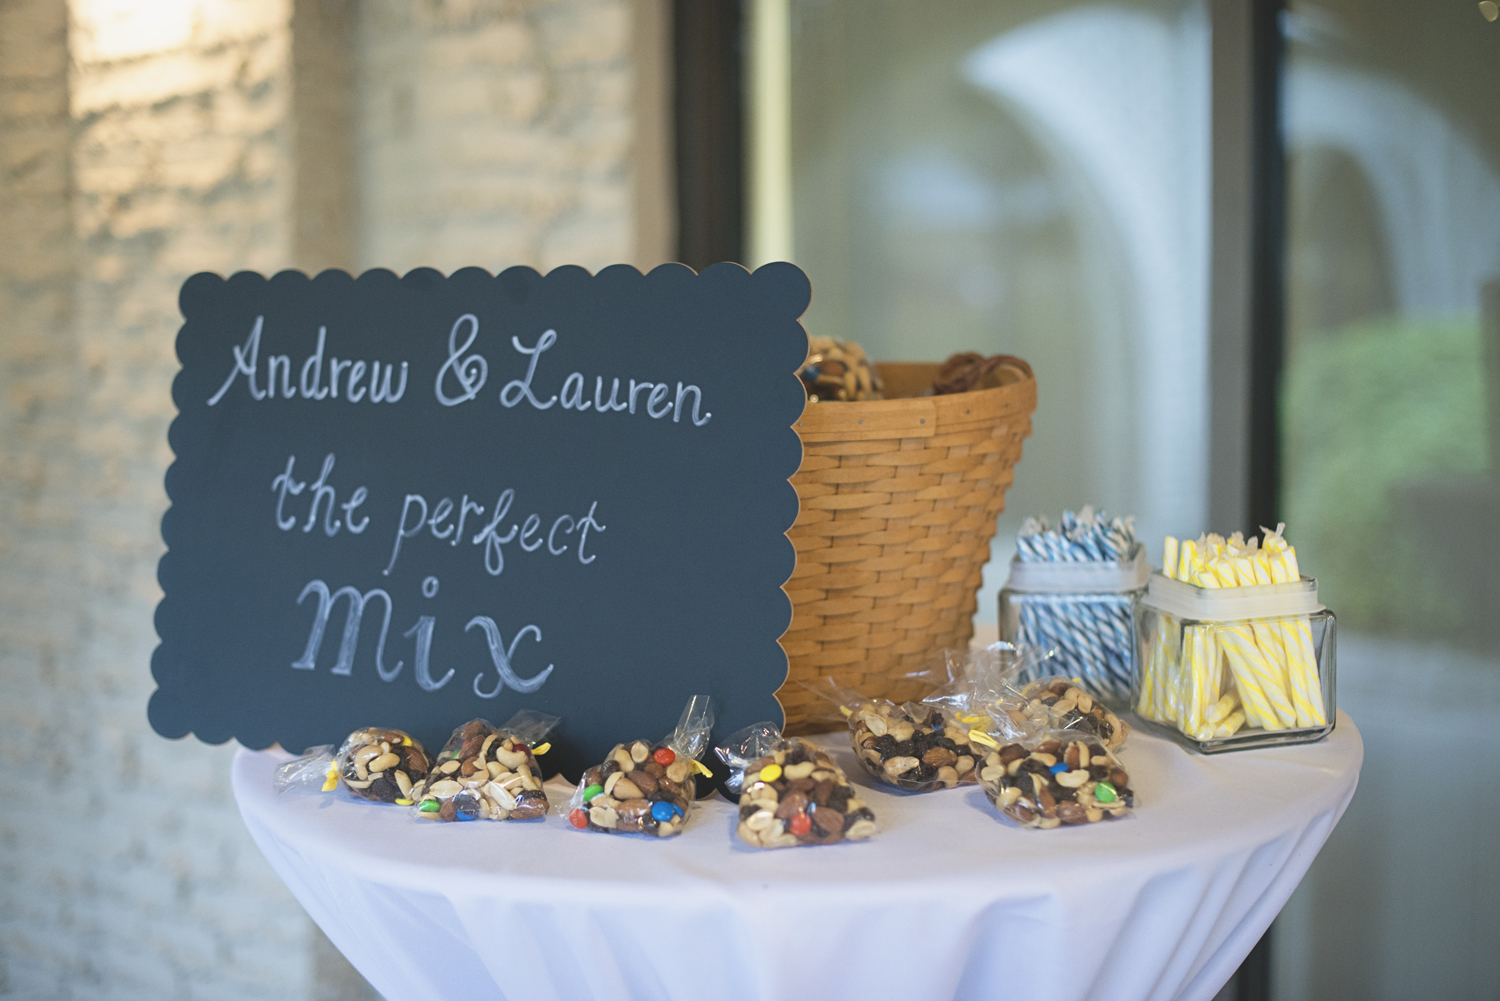 Mariners Museum Wedding | Newport News, Virginia |  Trail mix wedding favors